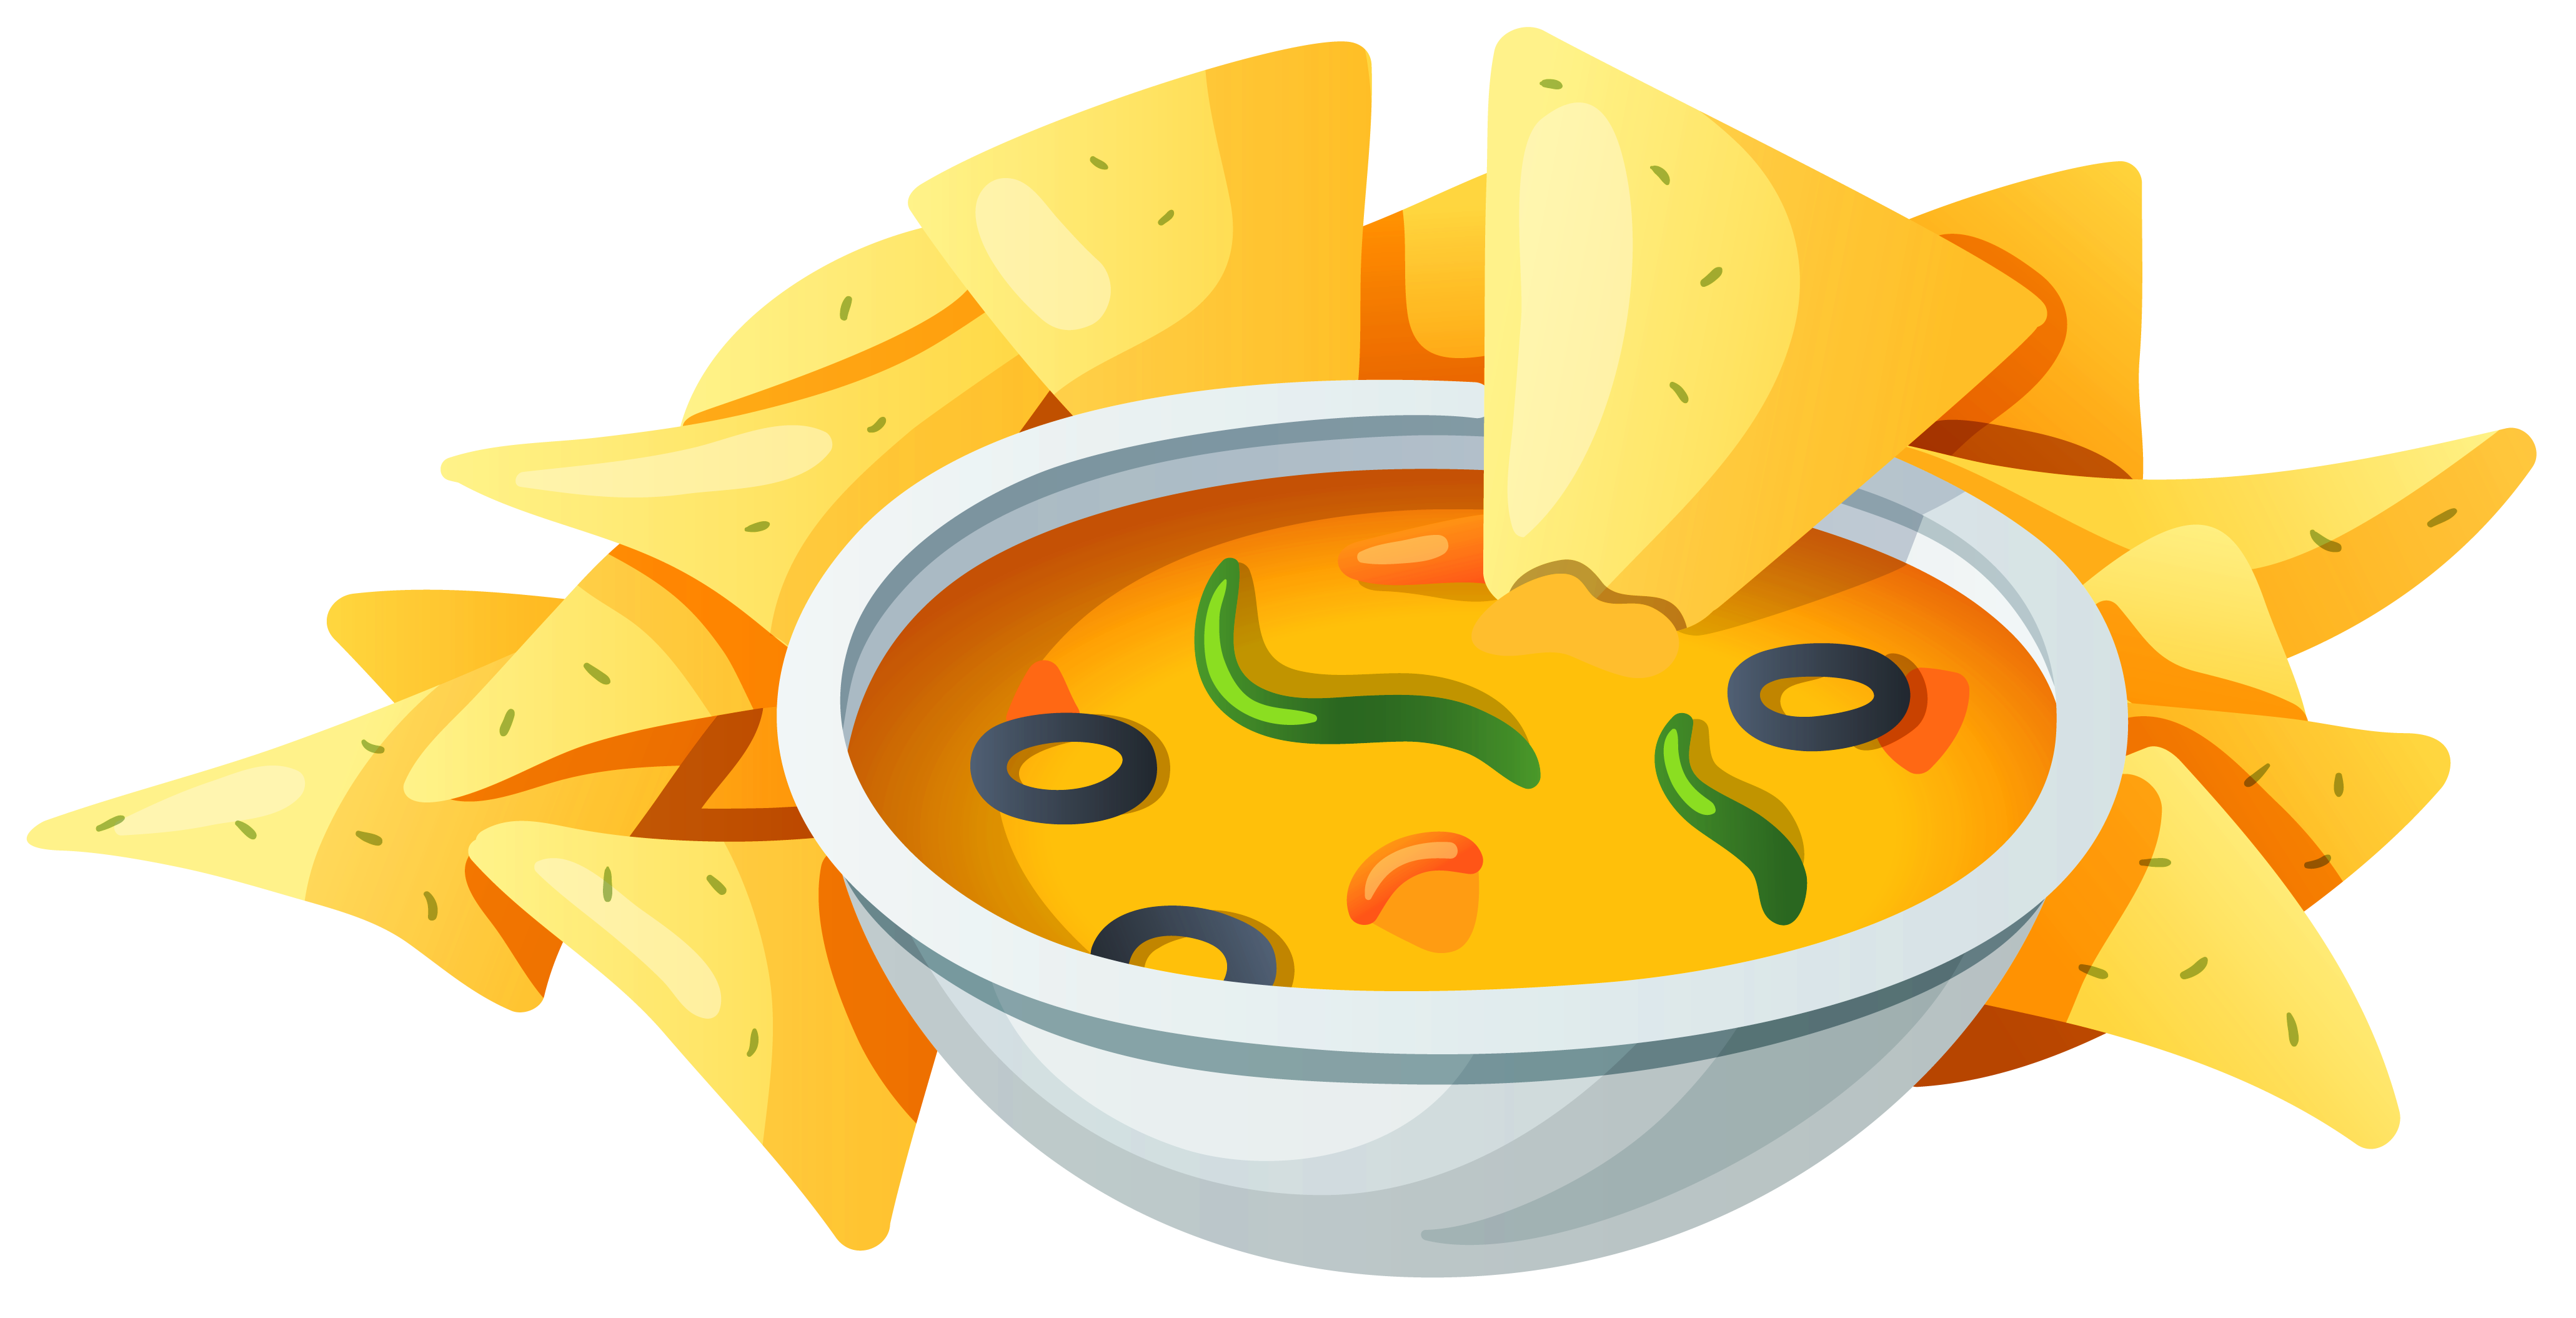 clipart royalty free download Nacho clipart party. Nachos cilpart attractive inspiration.